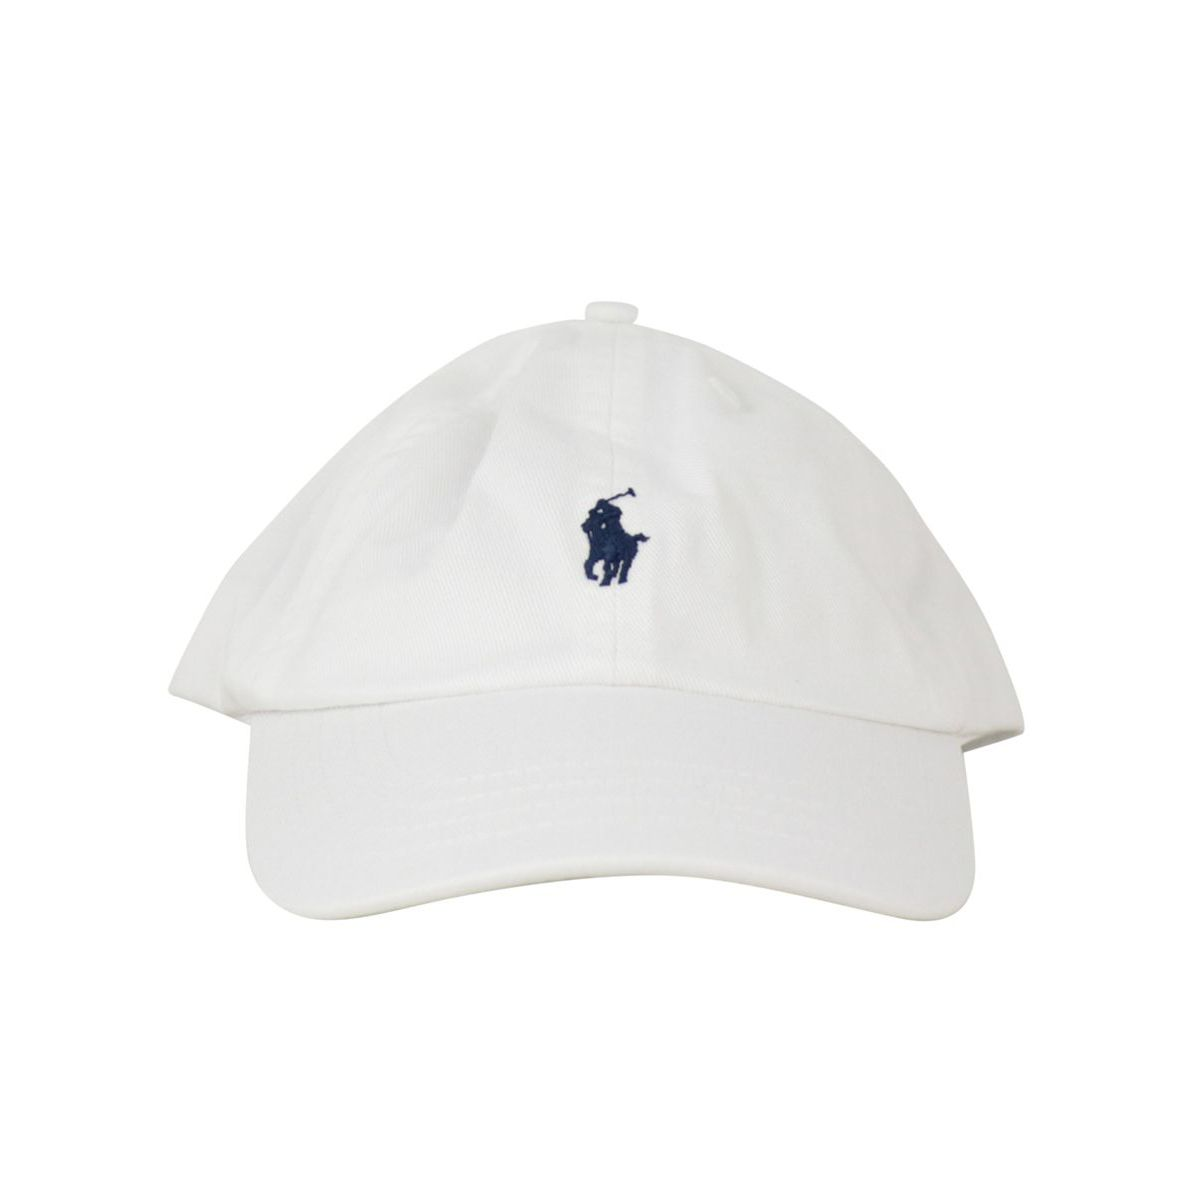 Cotton cap with contrasting embroidered logo White Polo Ralph Lauren